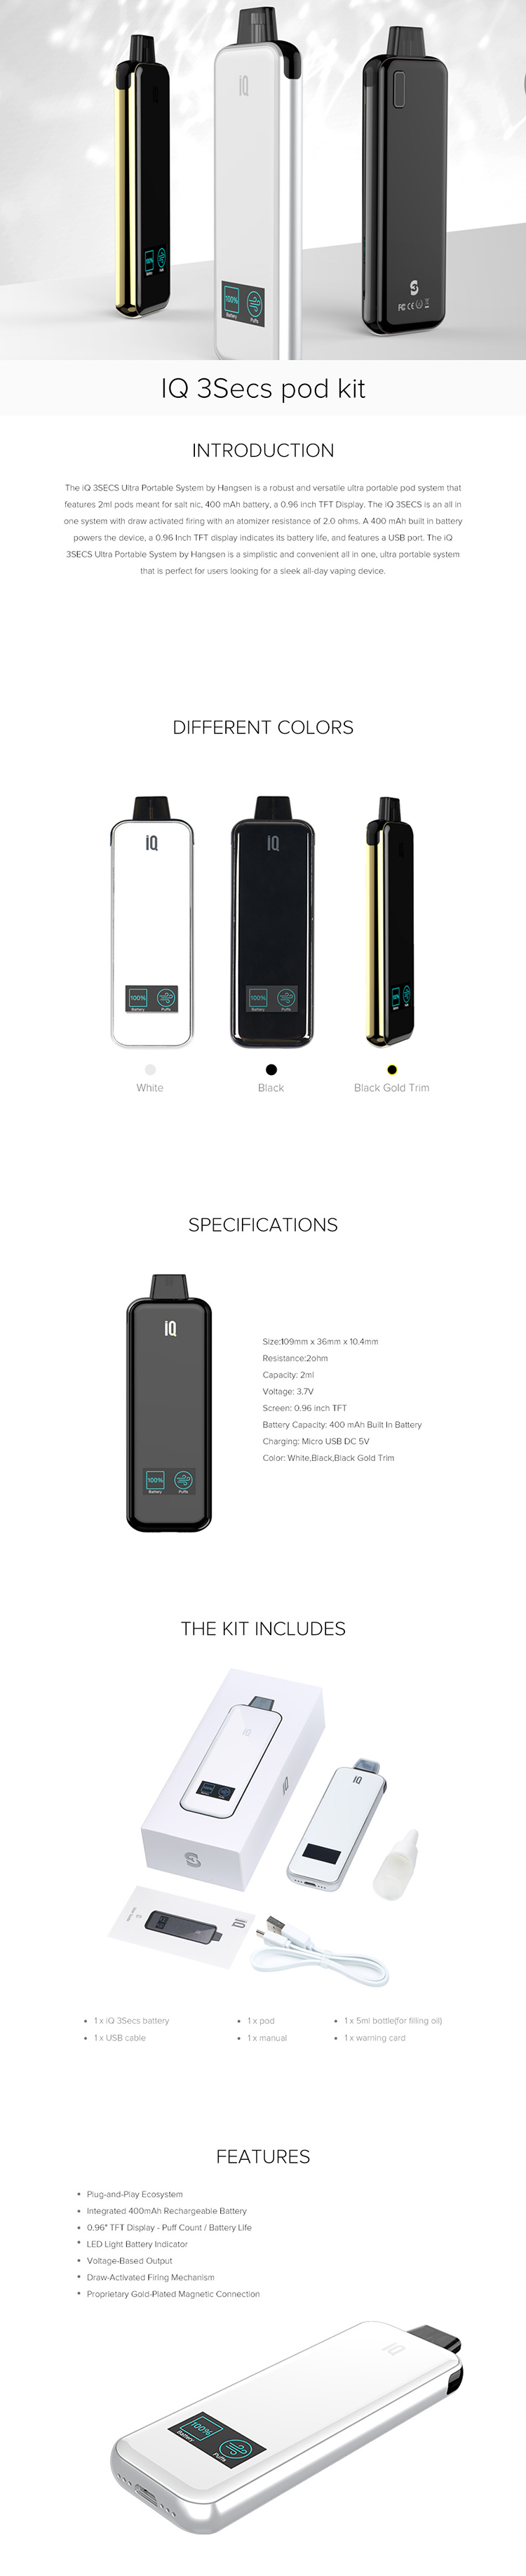 IQ 3Secs pod kit